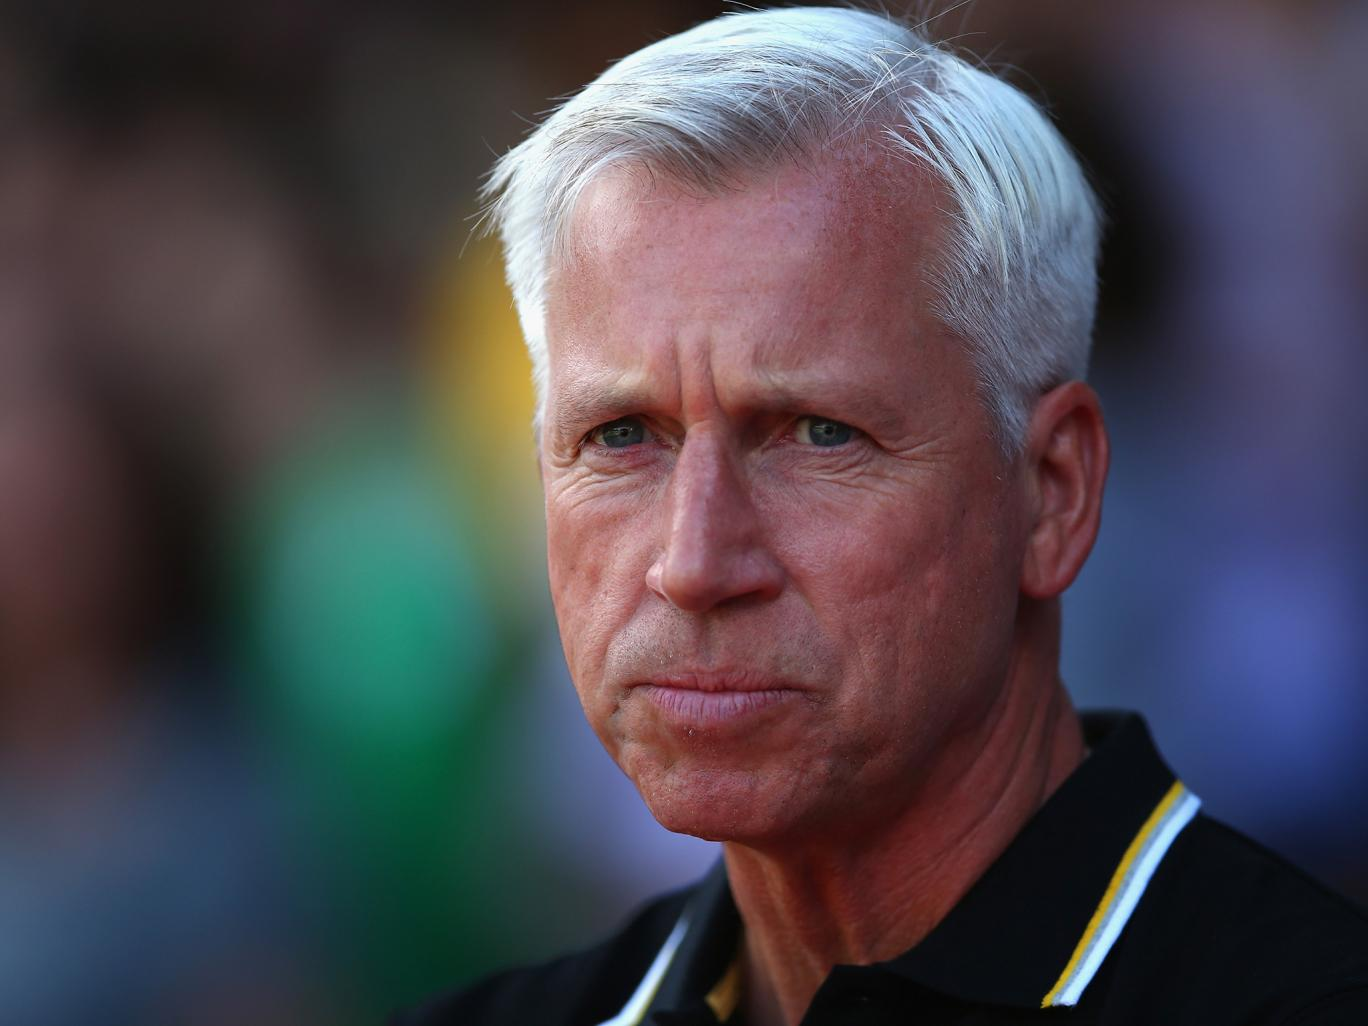 Palace manager Alan Pardew has had a rough start to the 2016 season - on and off the pitch. (Photo via Getty Images)